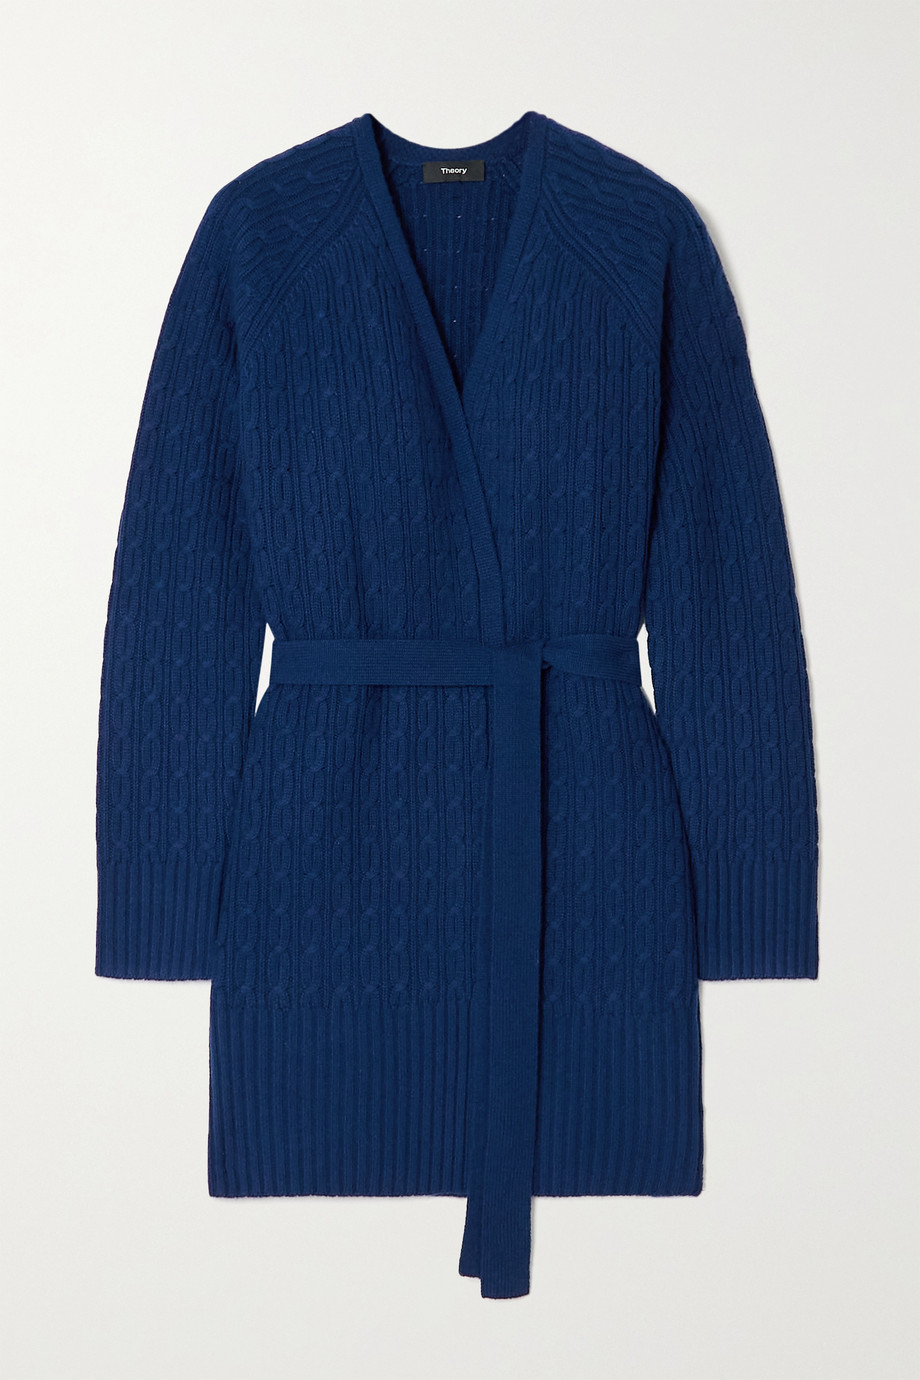 Theory Malinka belted cable-knit cashmere cardigan